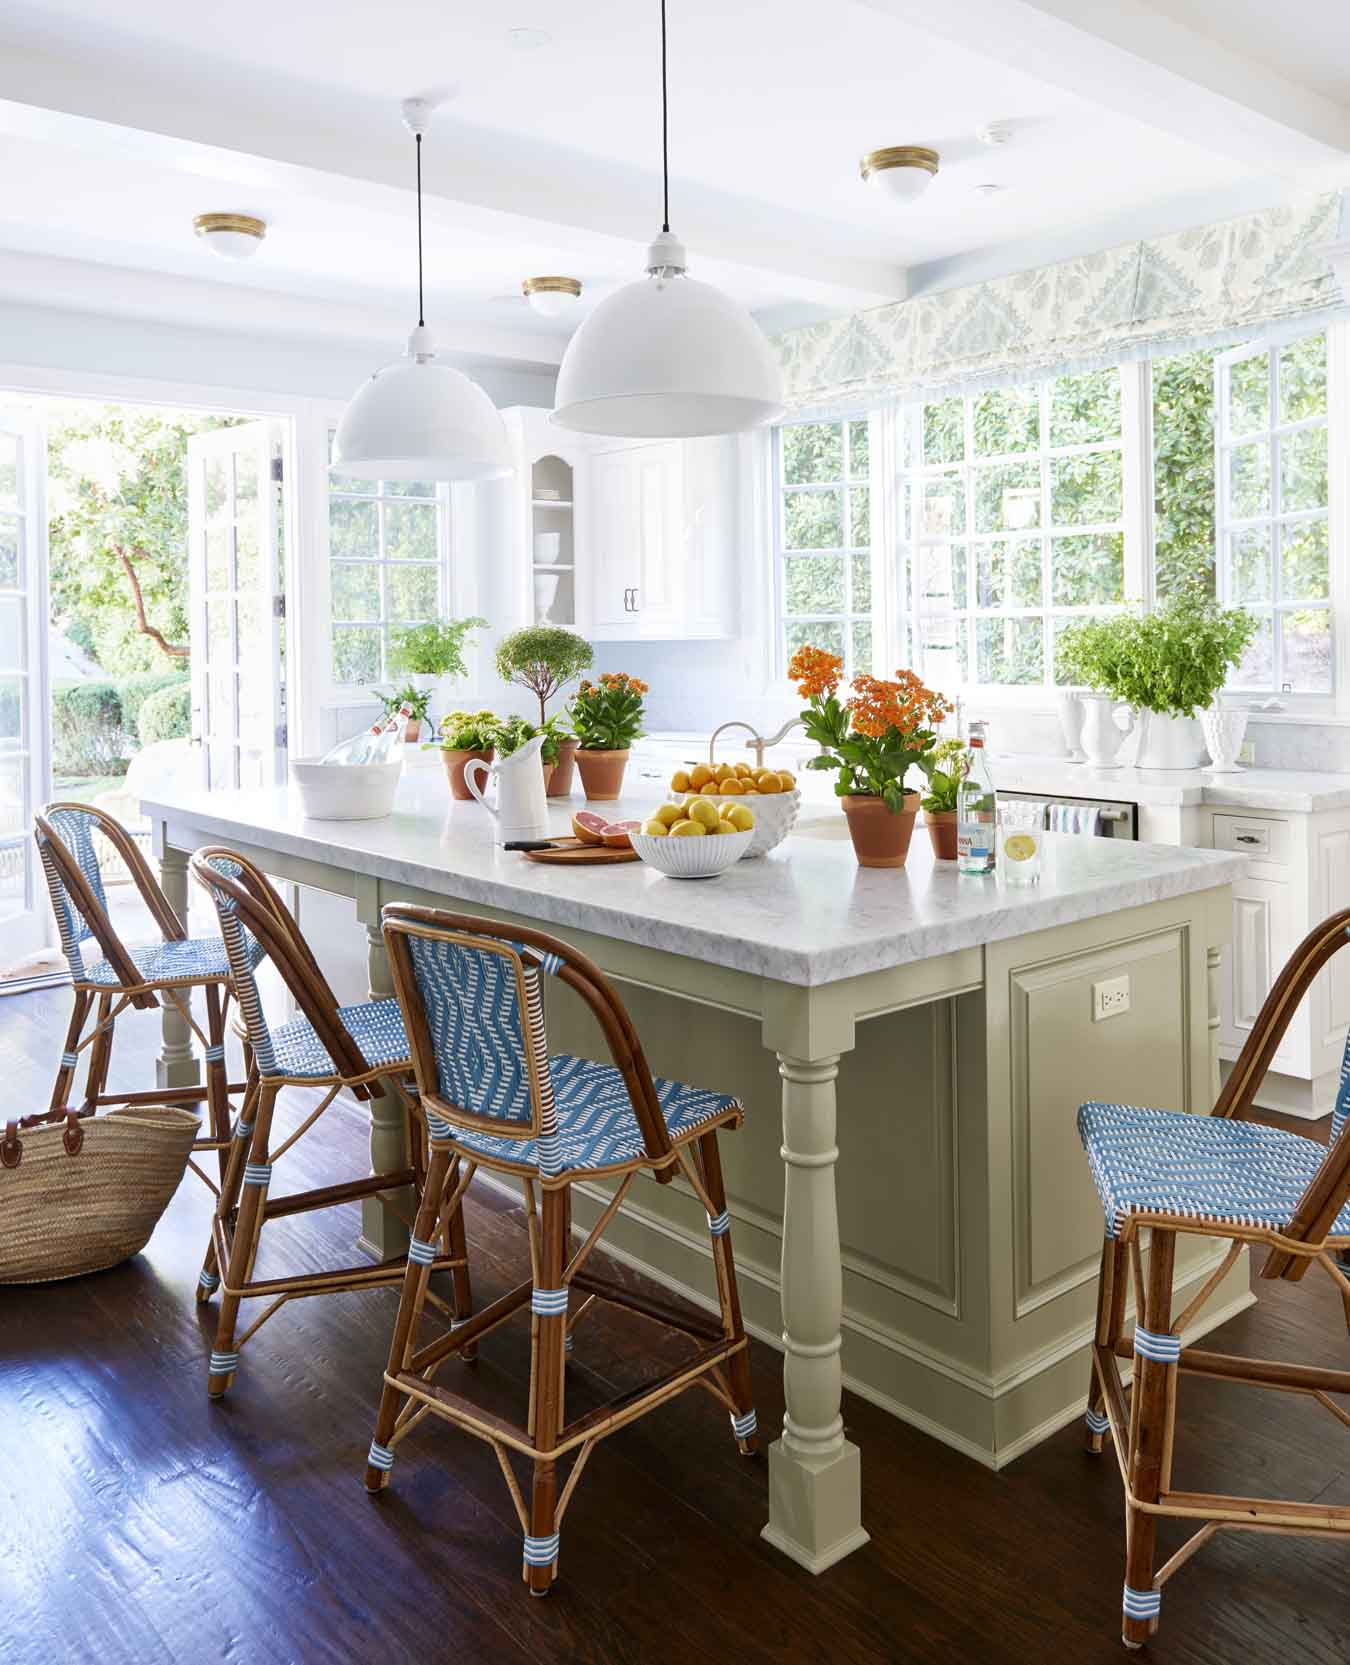 Kitchen Island With Seating 50 Best Kitchen Island Ideas Stylish Designs For Kitchen Islands